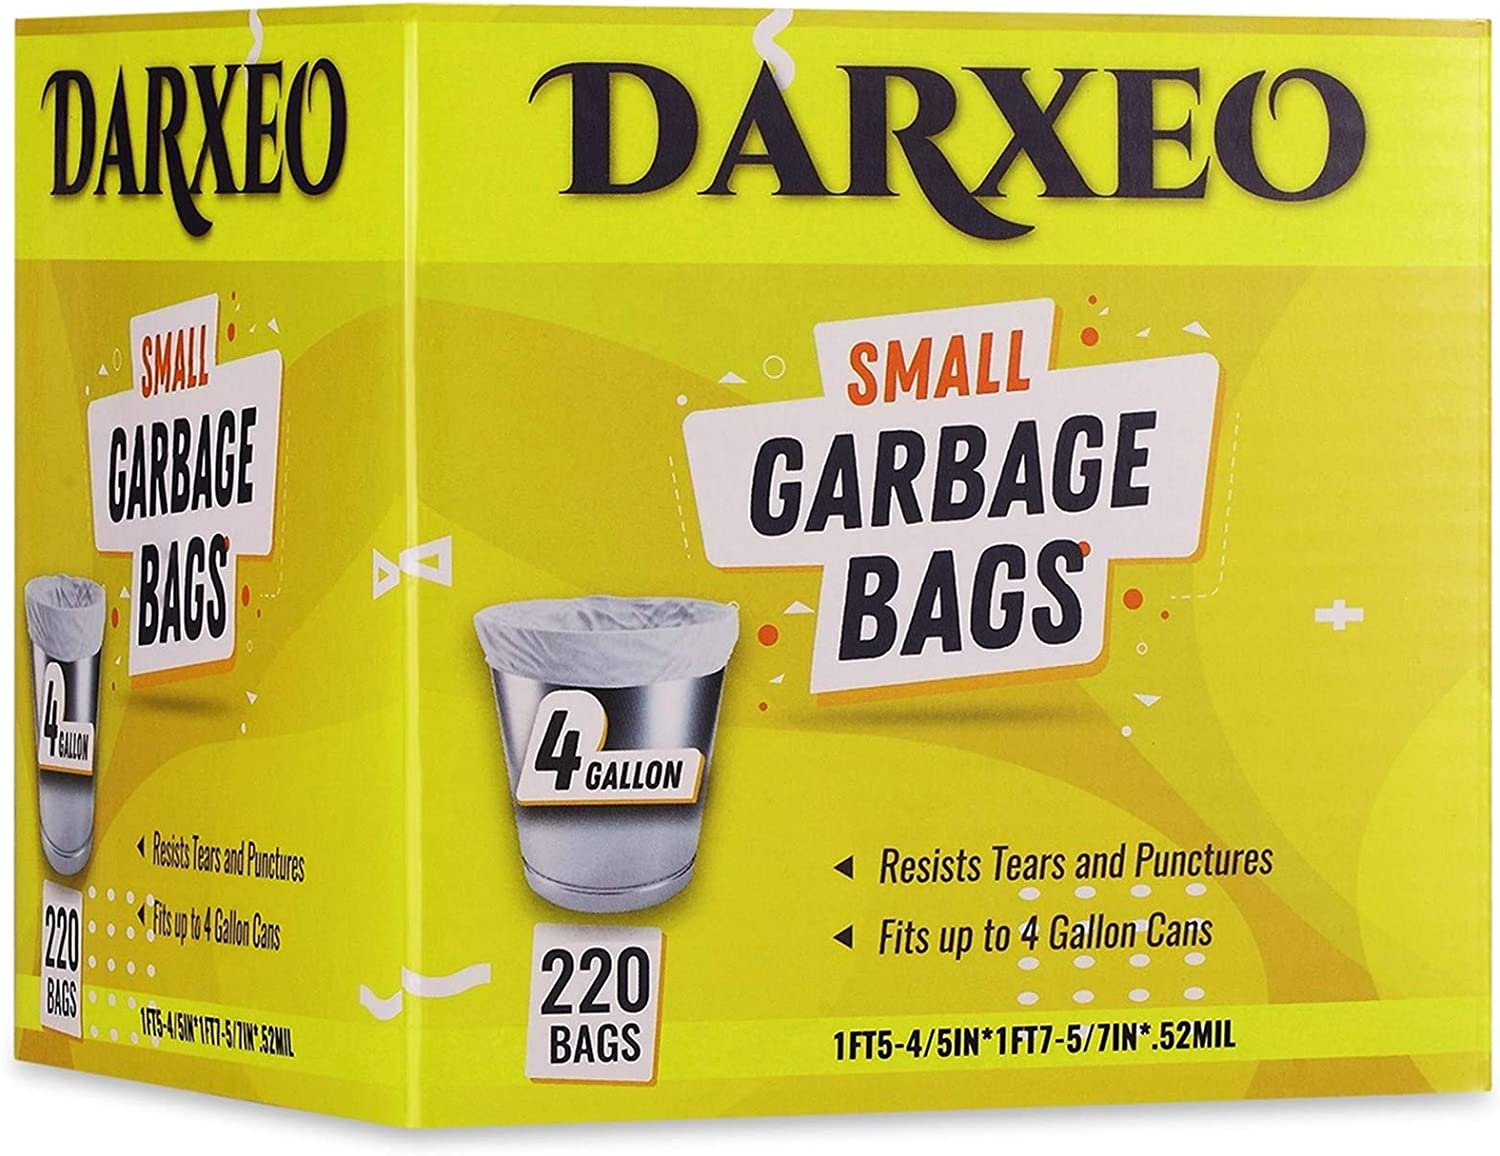 Small Trash Bags 4 Gallon Unscented, DARXEO White Garbage Bags, 15 Litre 220 Count Trash Can Liners for Bathroom Bedroom Office Trash Can Wastebasket